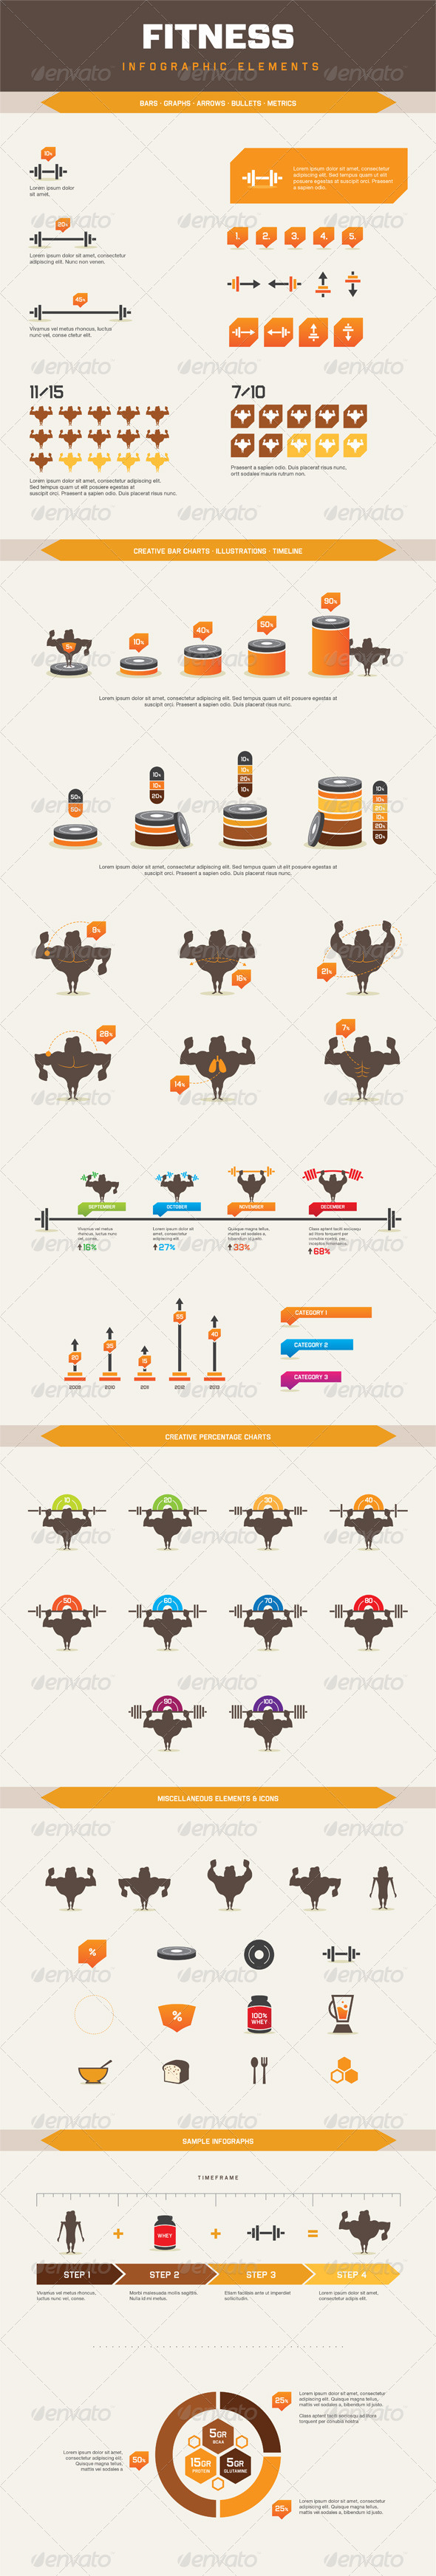 Infographic Elements - Fitness - Infographics